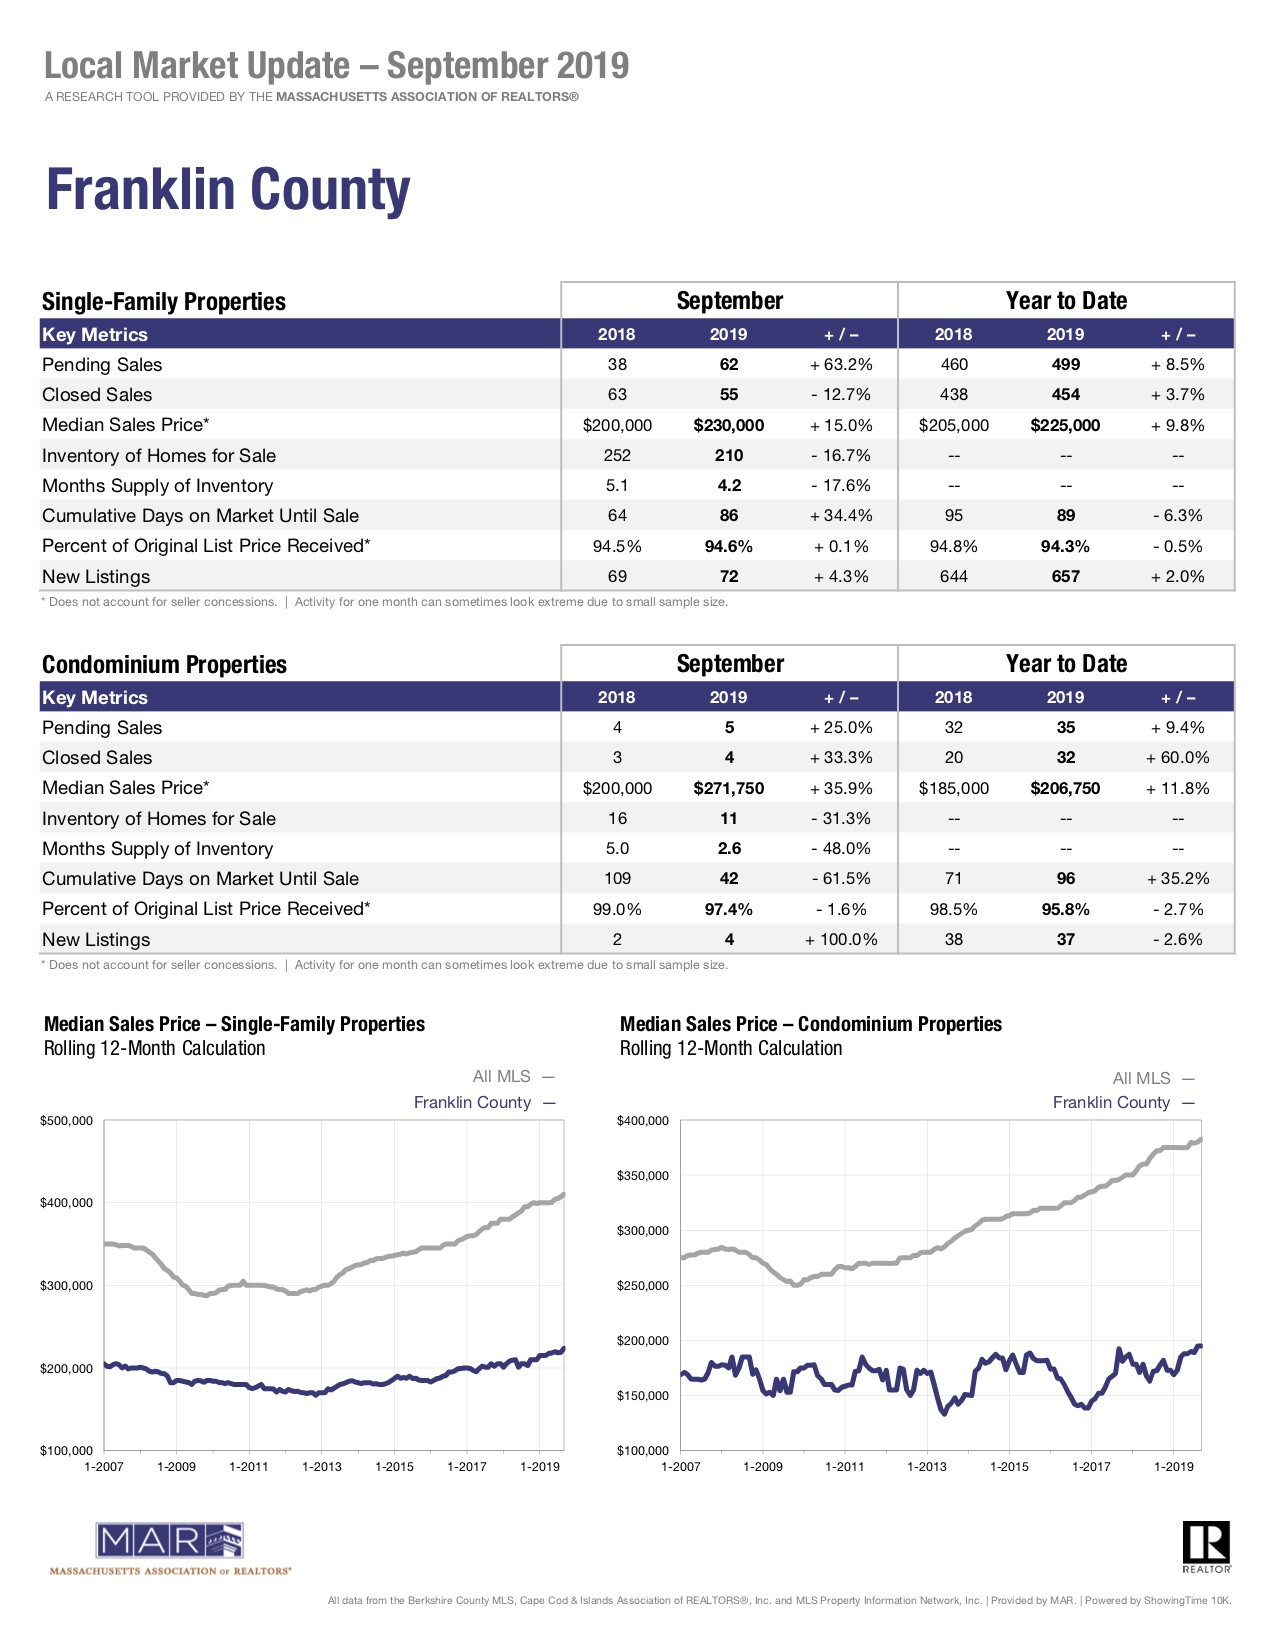 Franklin county local market update September 2019